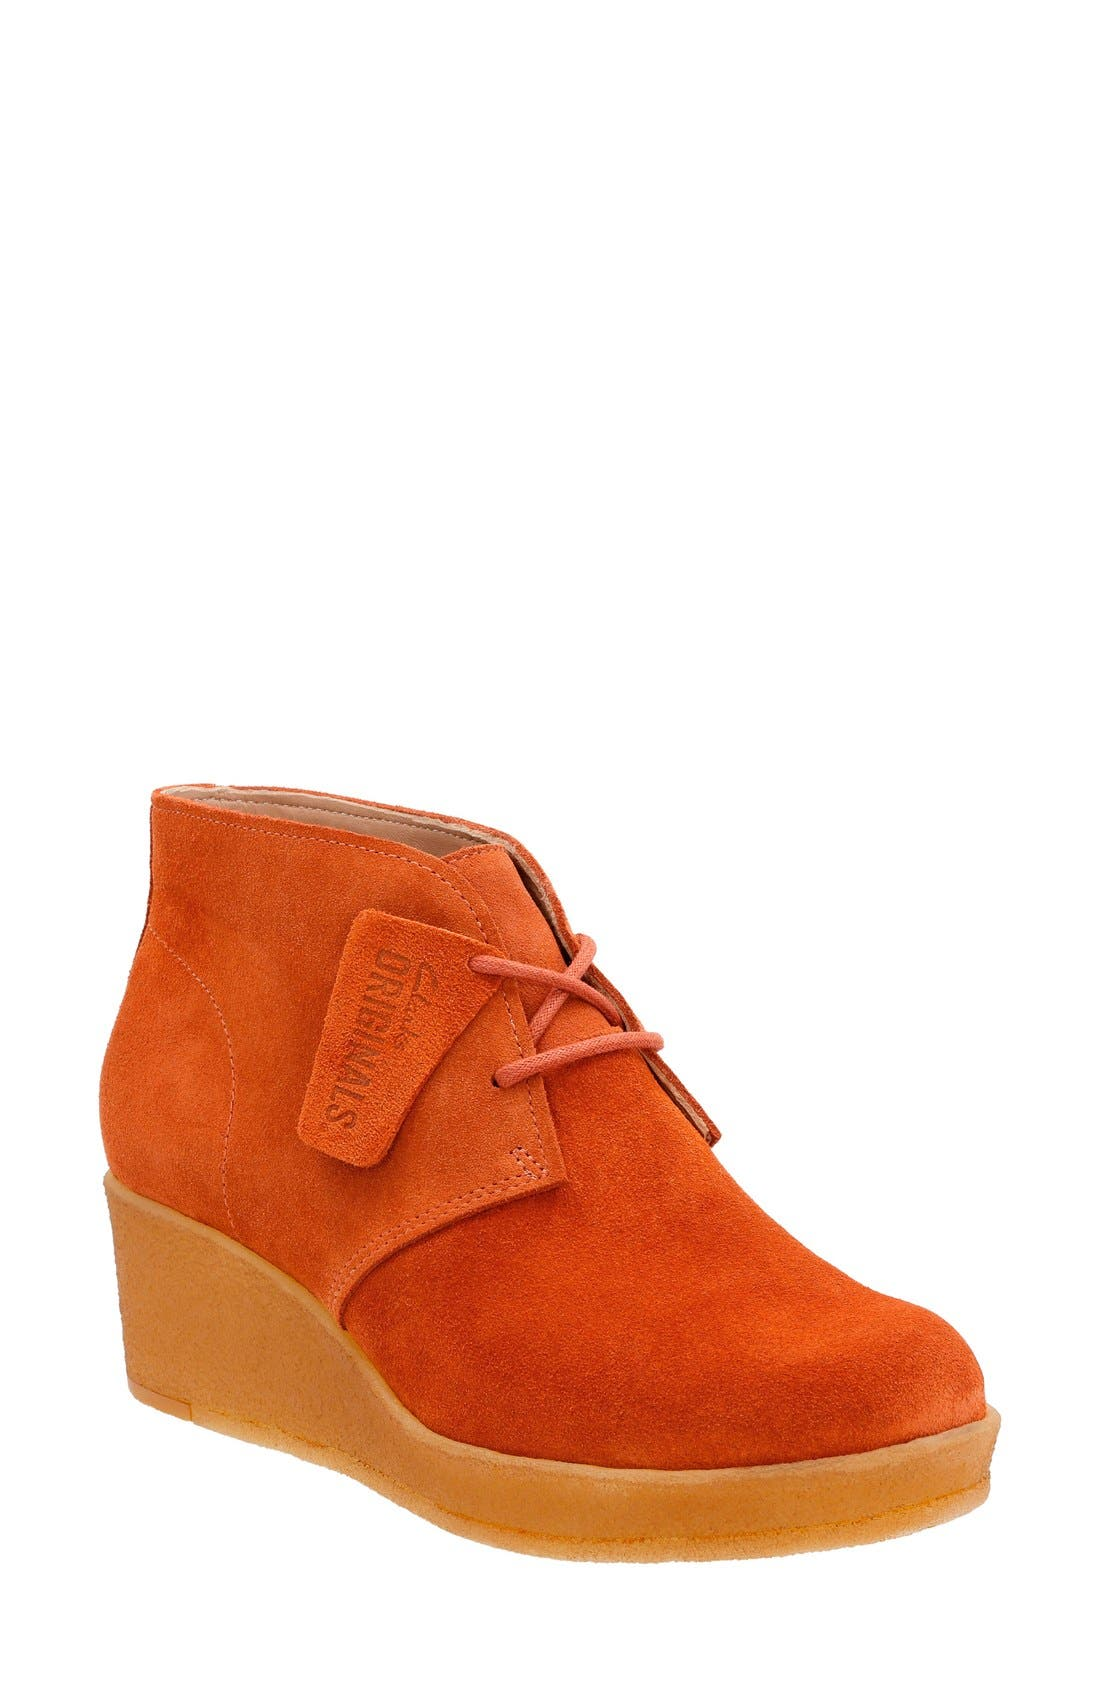 Originals 'Athie Terra' Wedge Boot,                             Main thumbnail 2, color,